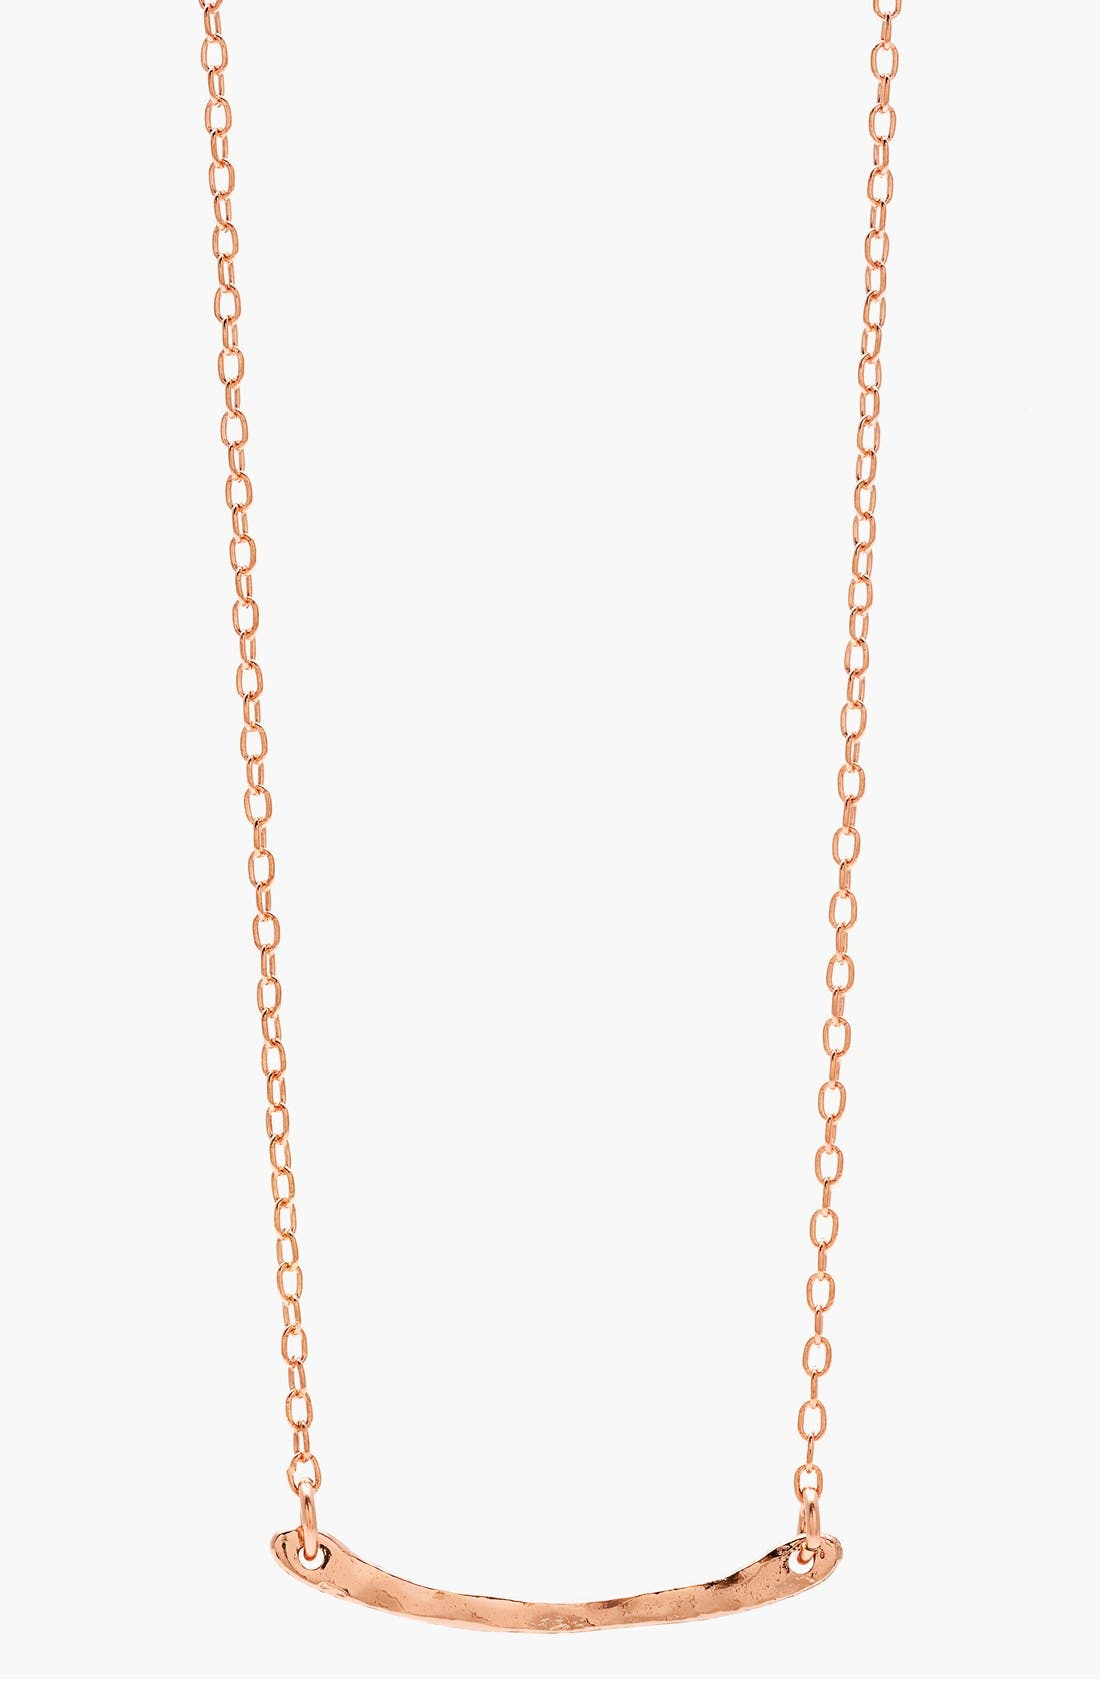 gorjana 'Taner' Bar Mini Pendant Necklace